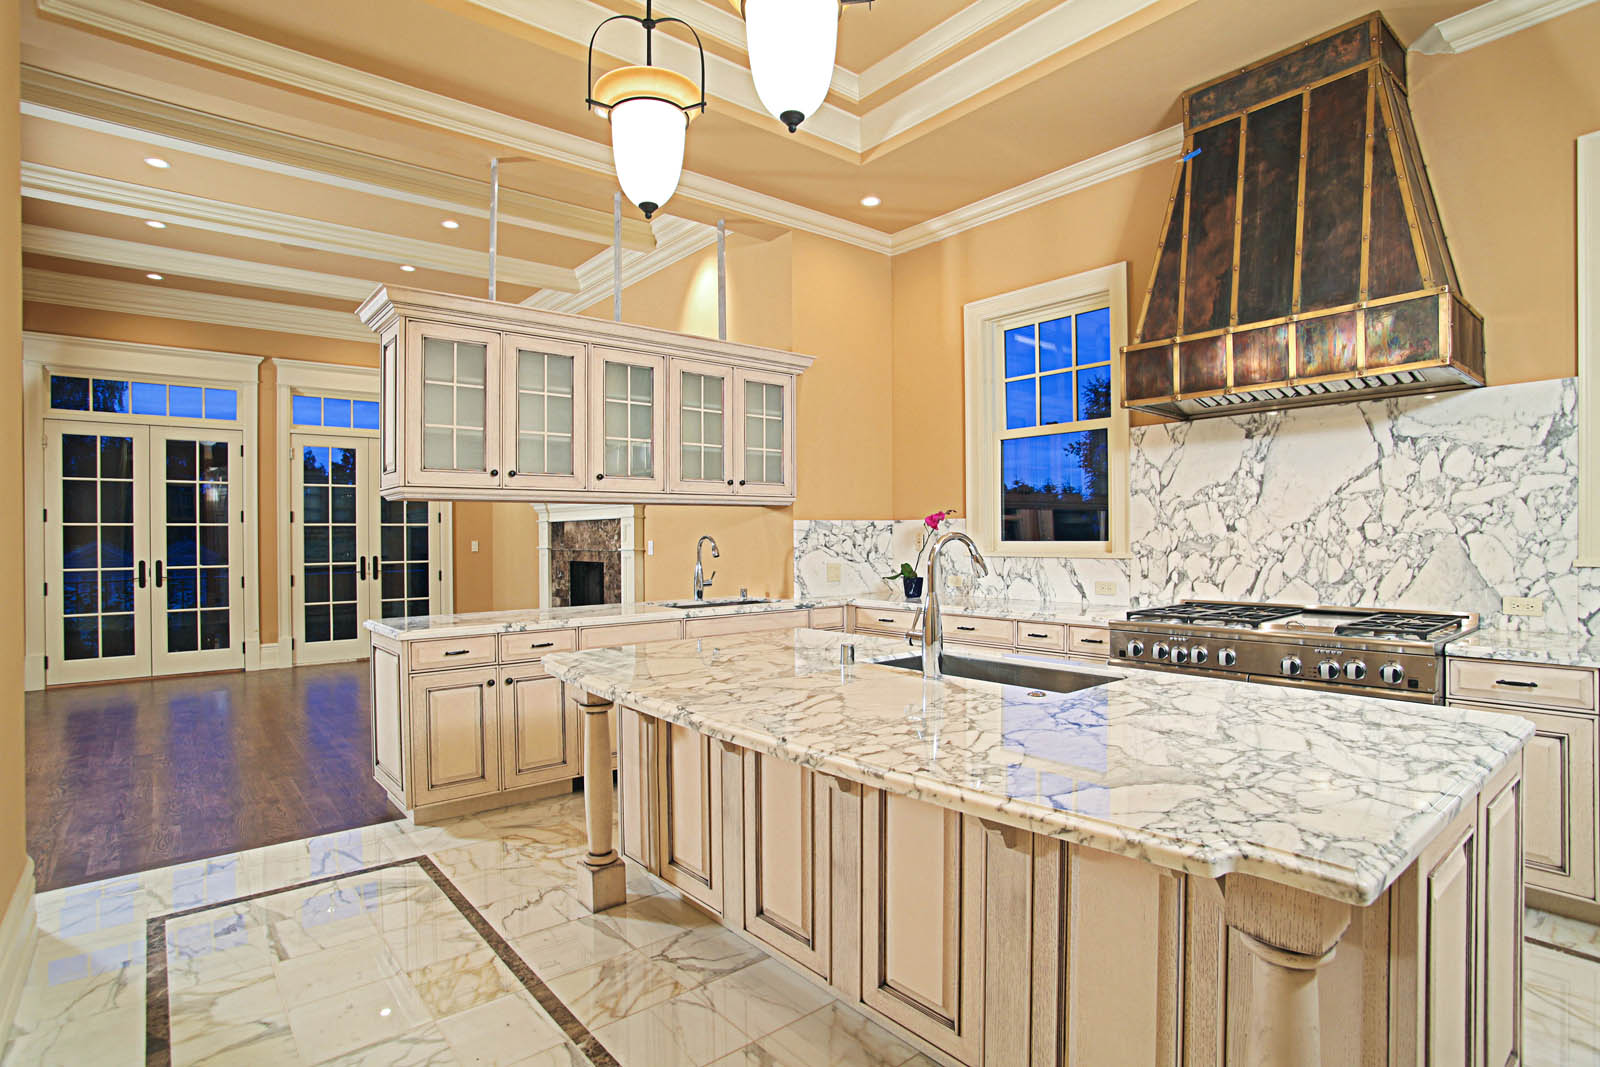 Brilliant Marble Kitchen Floor Tile Idea for Classic Kitchen with Wide Island and Long Counter near Marble Backsplash